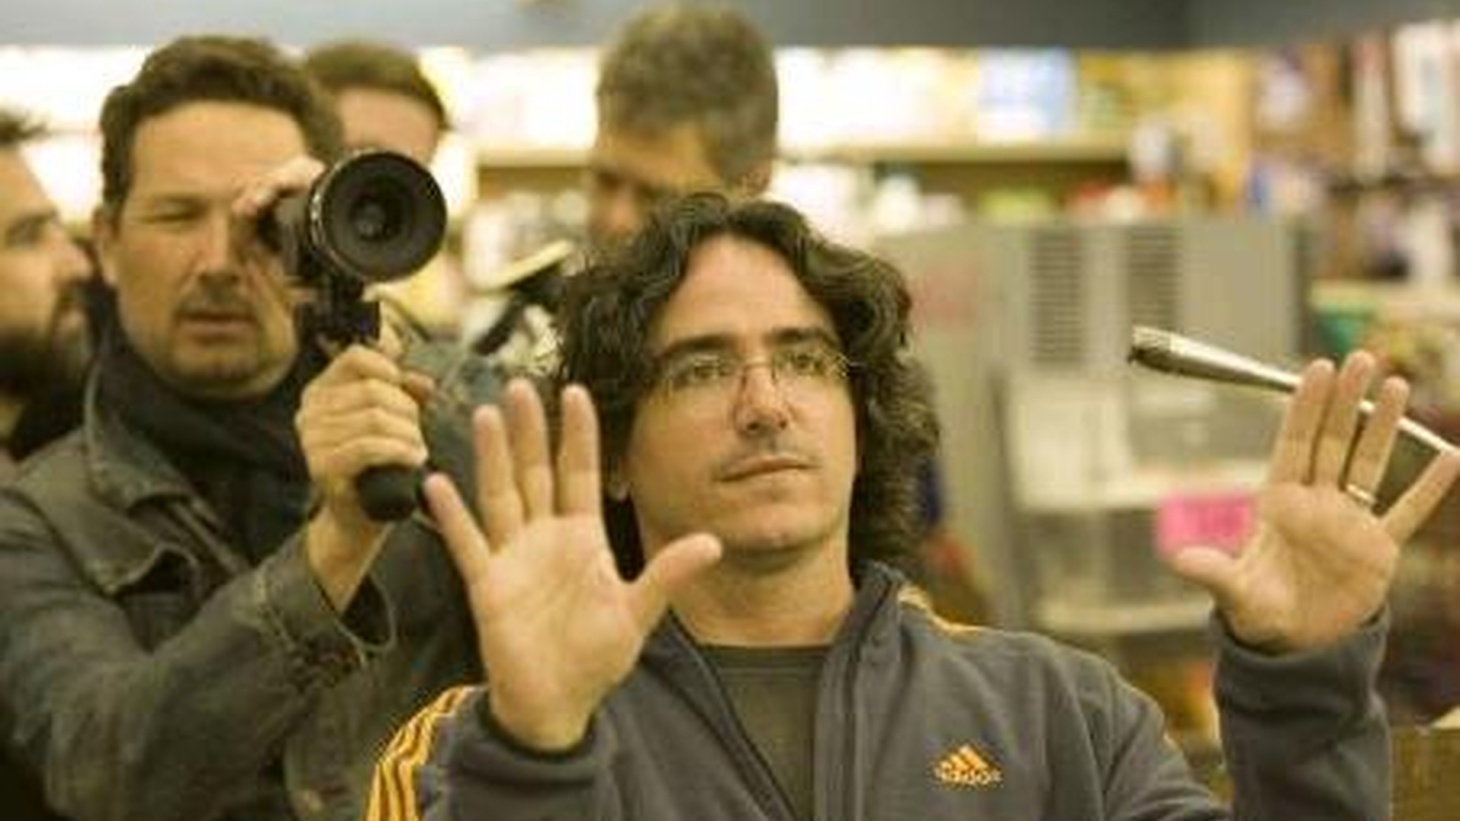 """For television fans, the phrase """"not a routine expedition"""" ranks up there with """"a three-hour tour."""" Director Brad Silberling (Casper, Lemony Snicket's A Series of Unfortunate Events) brings TV fans the classic Land of the Lost to the big screen -- with extra cheese."""